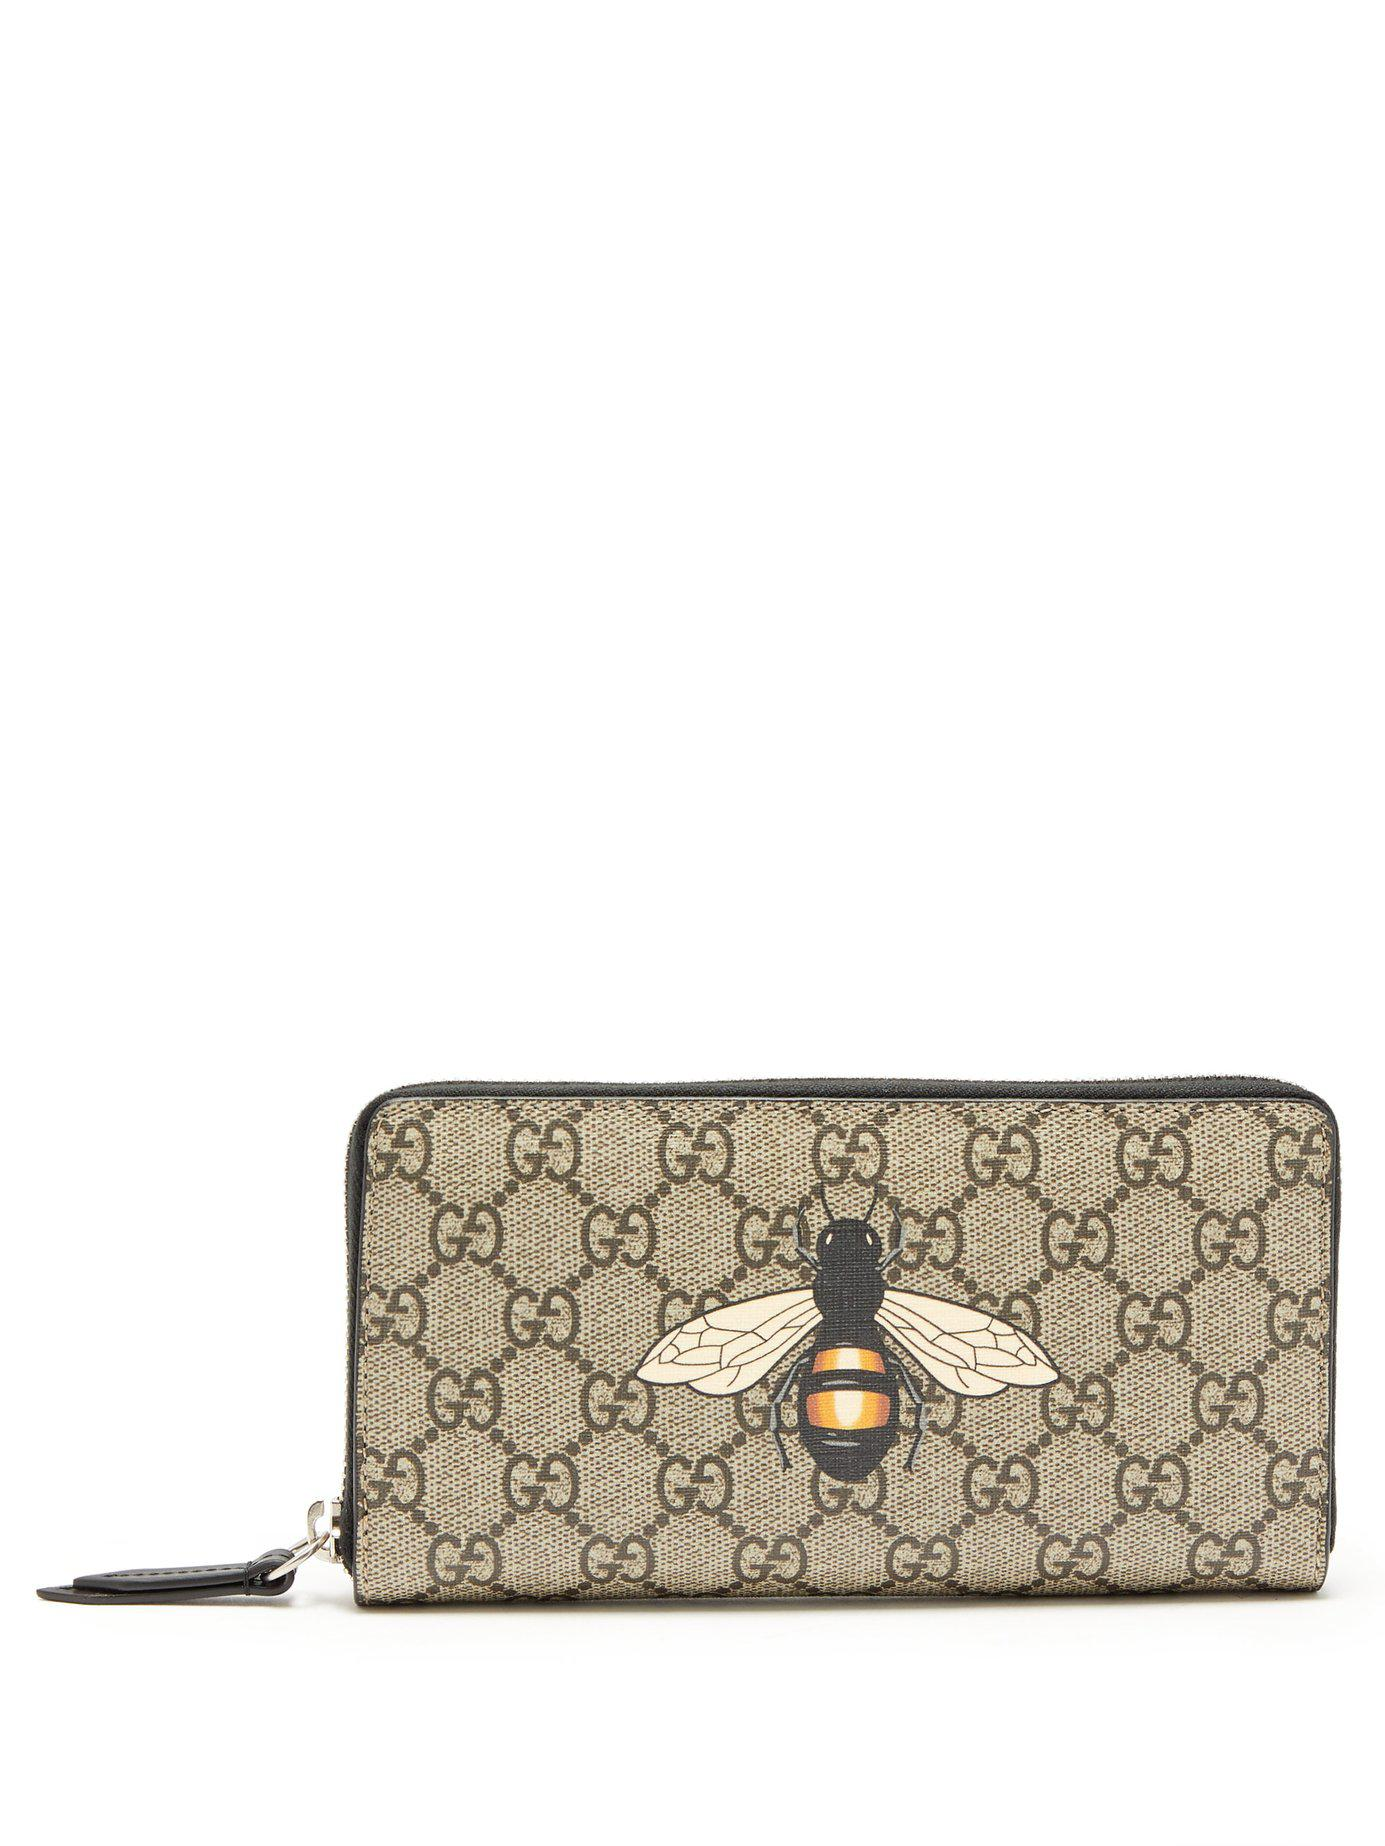 86c332ea225e Gucci Gg Supreme Bee Print Wallet in Brown for Men - Lyst